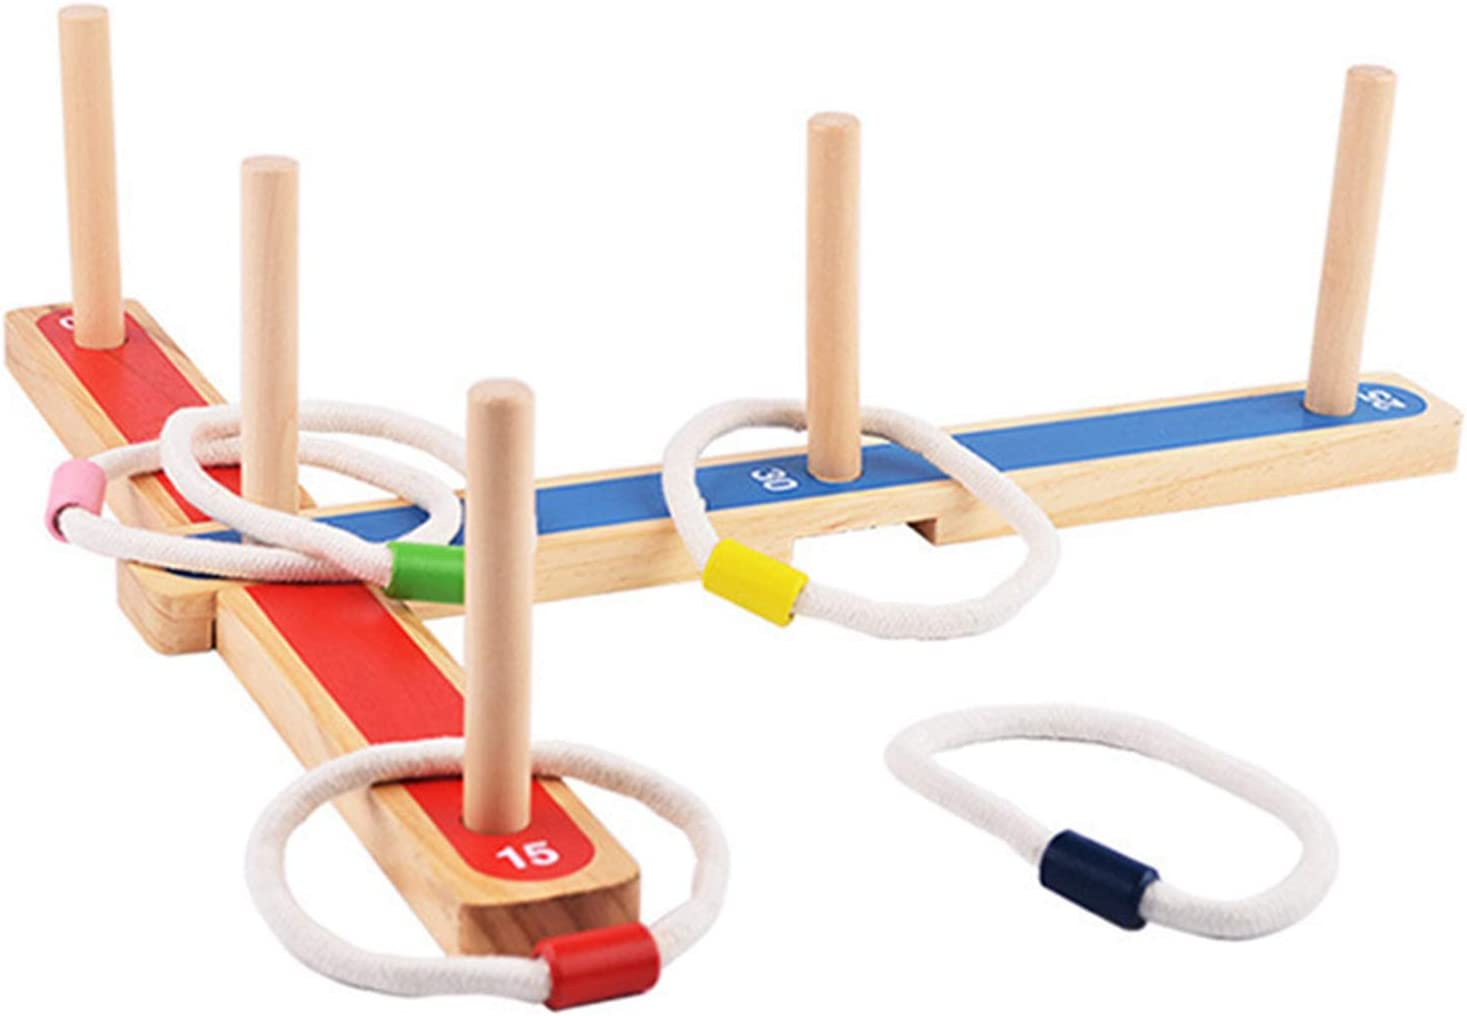 BARMI Quoits Easy Storage Multi-Color Kids New products world's highest quality Fashionable popular for Per Wooden